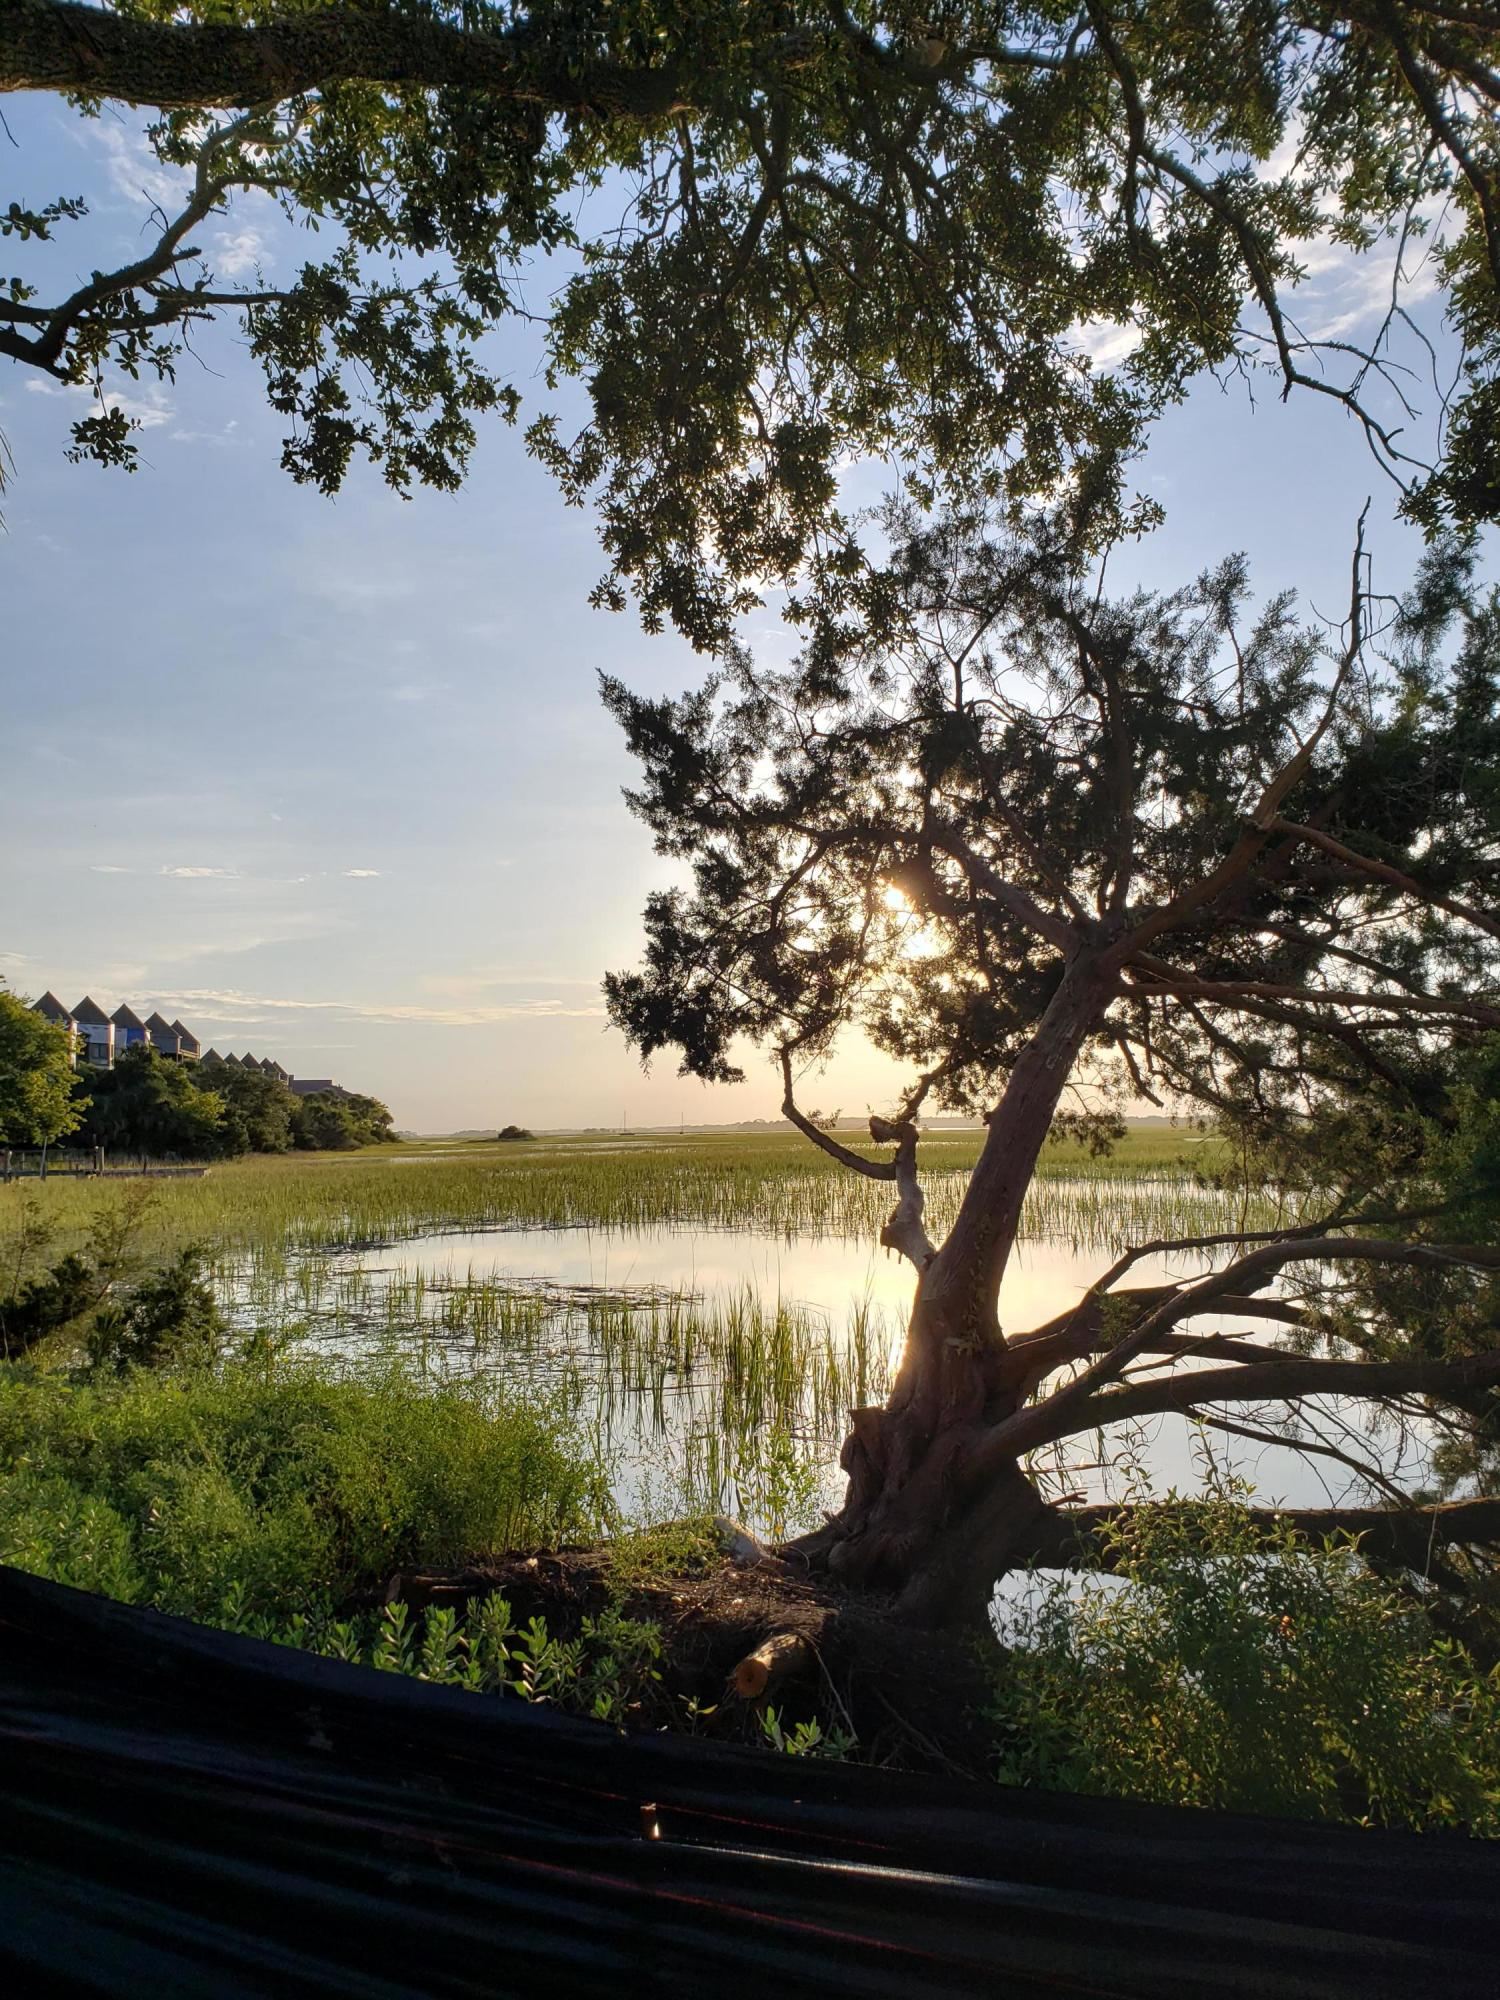 Mariners Cay Homes For Sale - 1008 Mariners Cay, Folly Beach, SC - 7